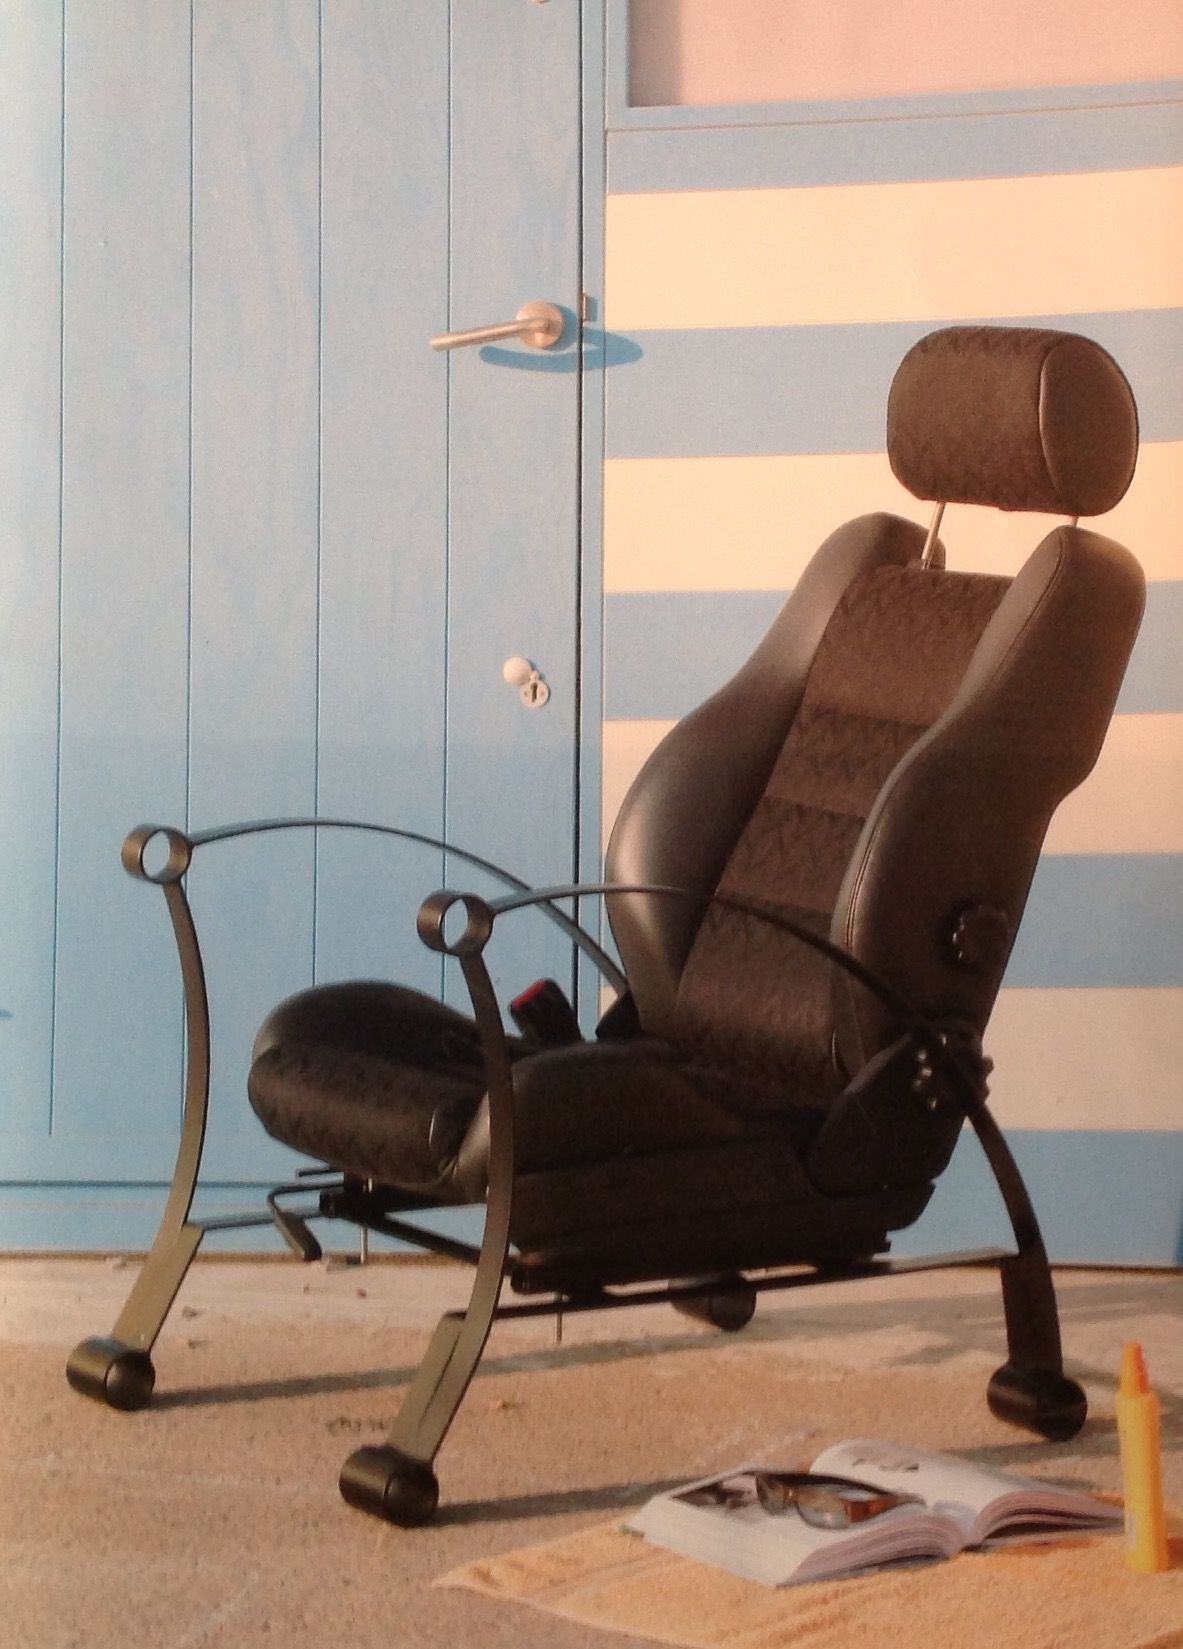 Spring Chair Car Seat Chair Based On The Leaf Spring Automobile Up Cycling